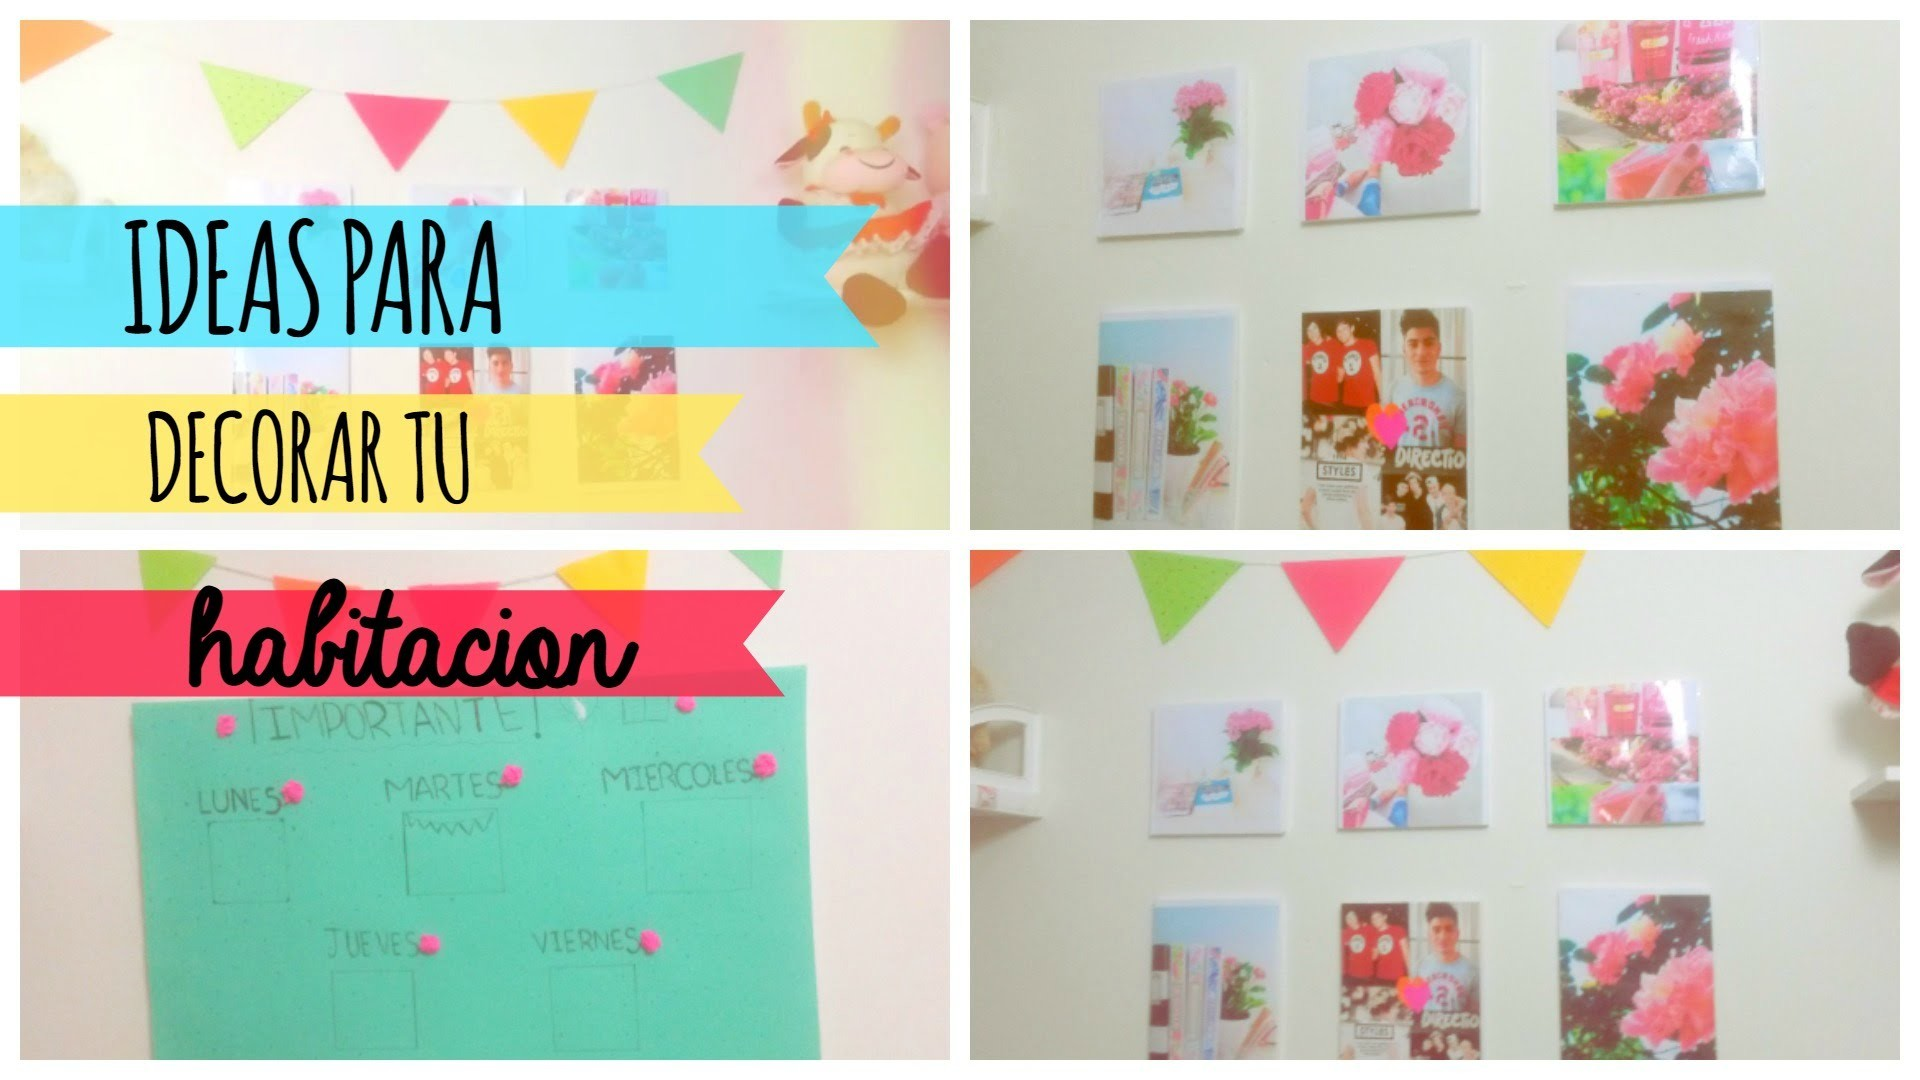 Diy ideas para decorar tu habitacion cuarto alediytips for Tips para decorar tu cuarto